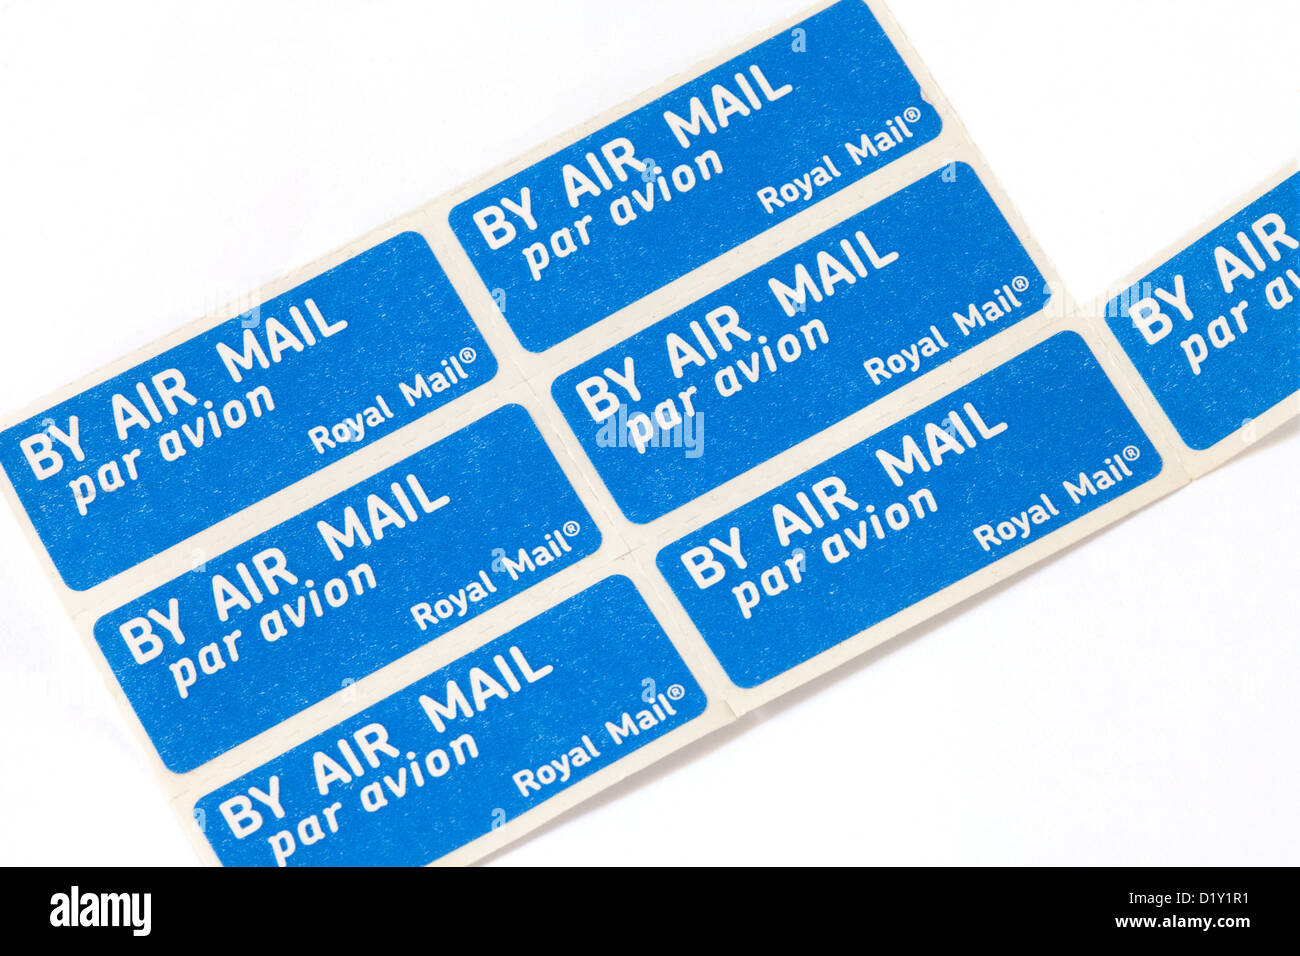 Air mail par avion letter stamp stamps sticker stickers, UK - Stock Image